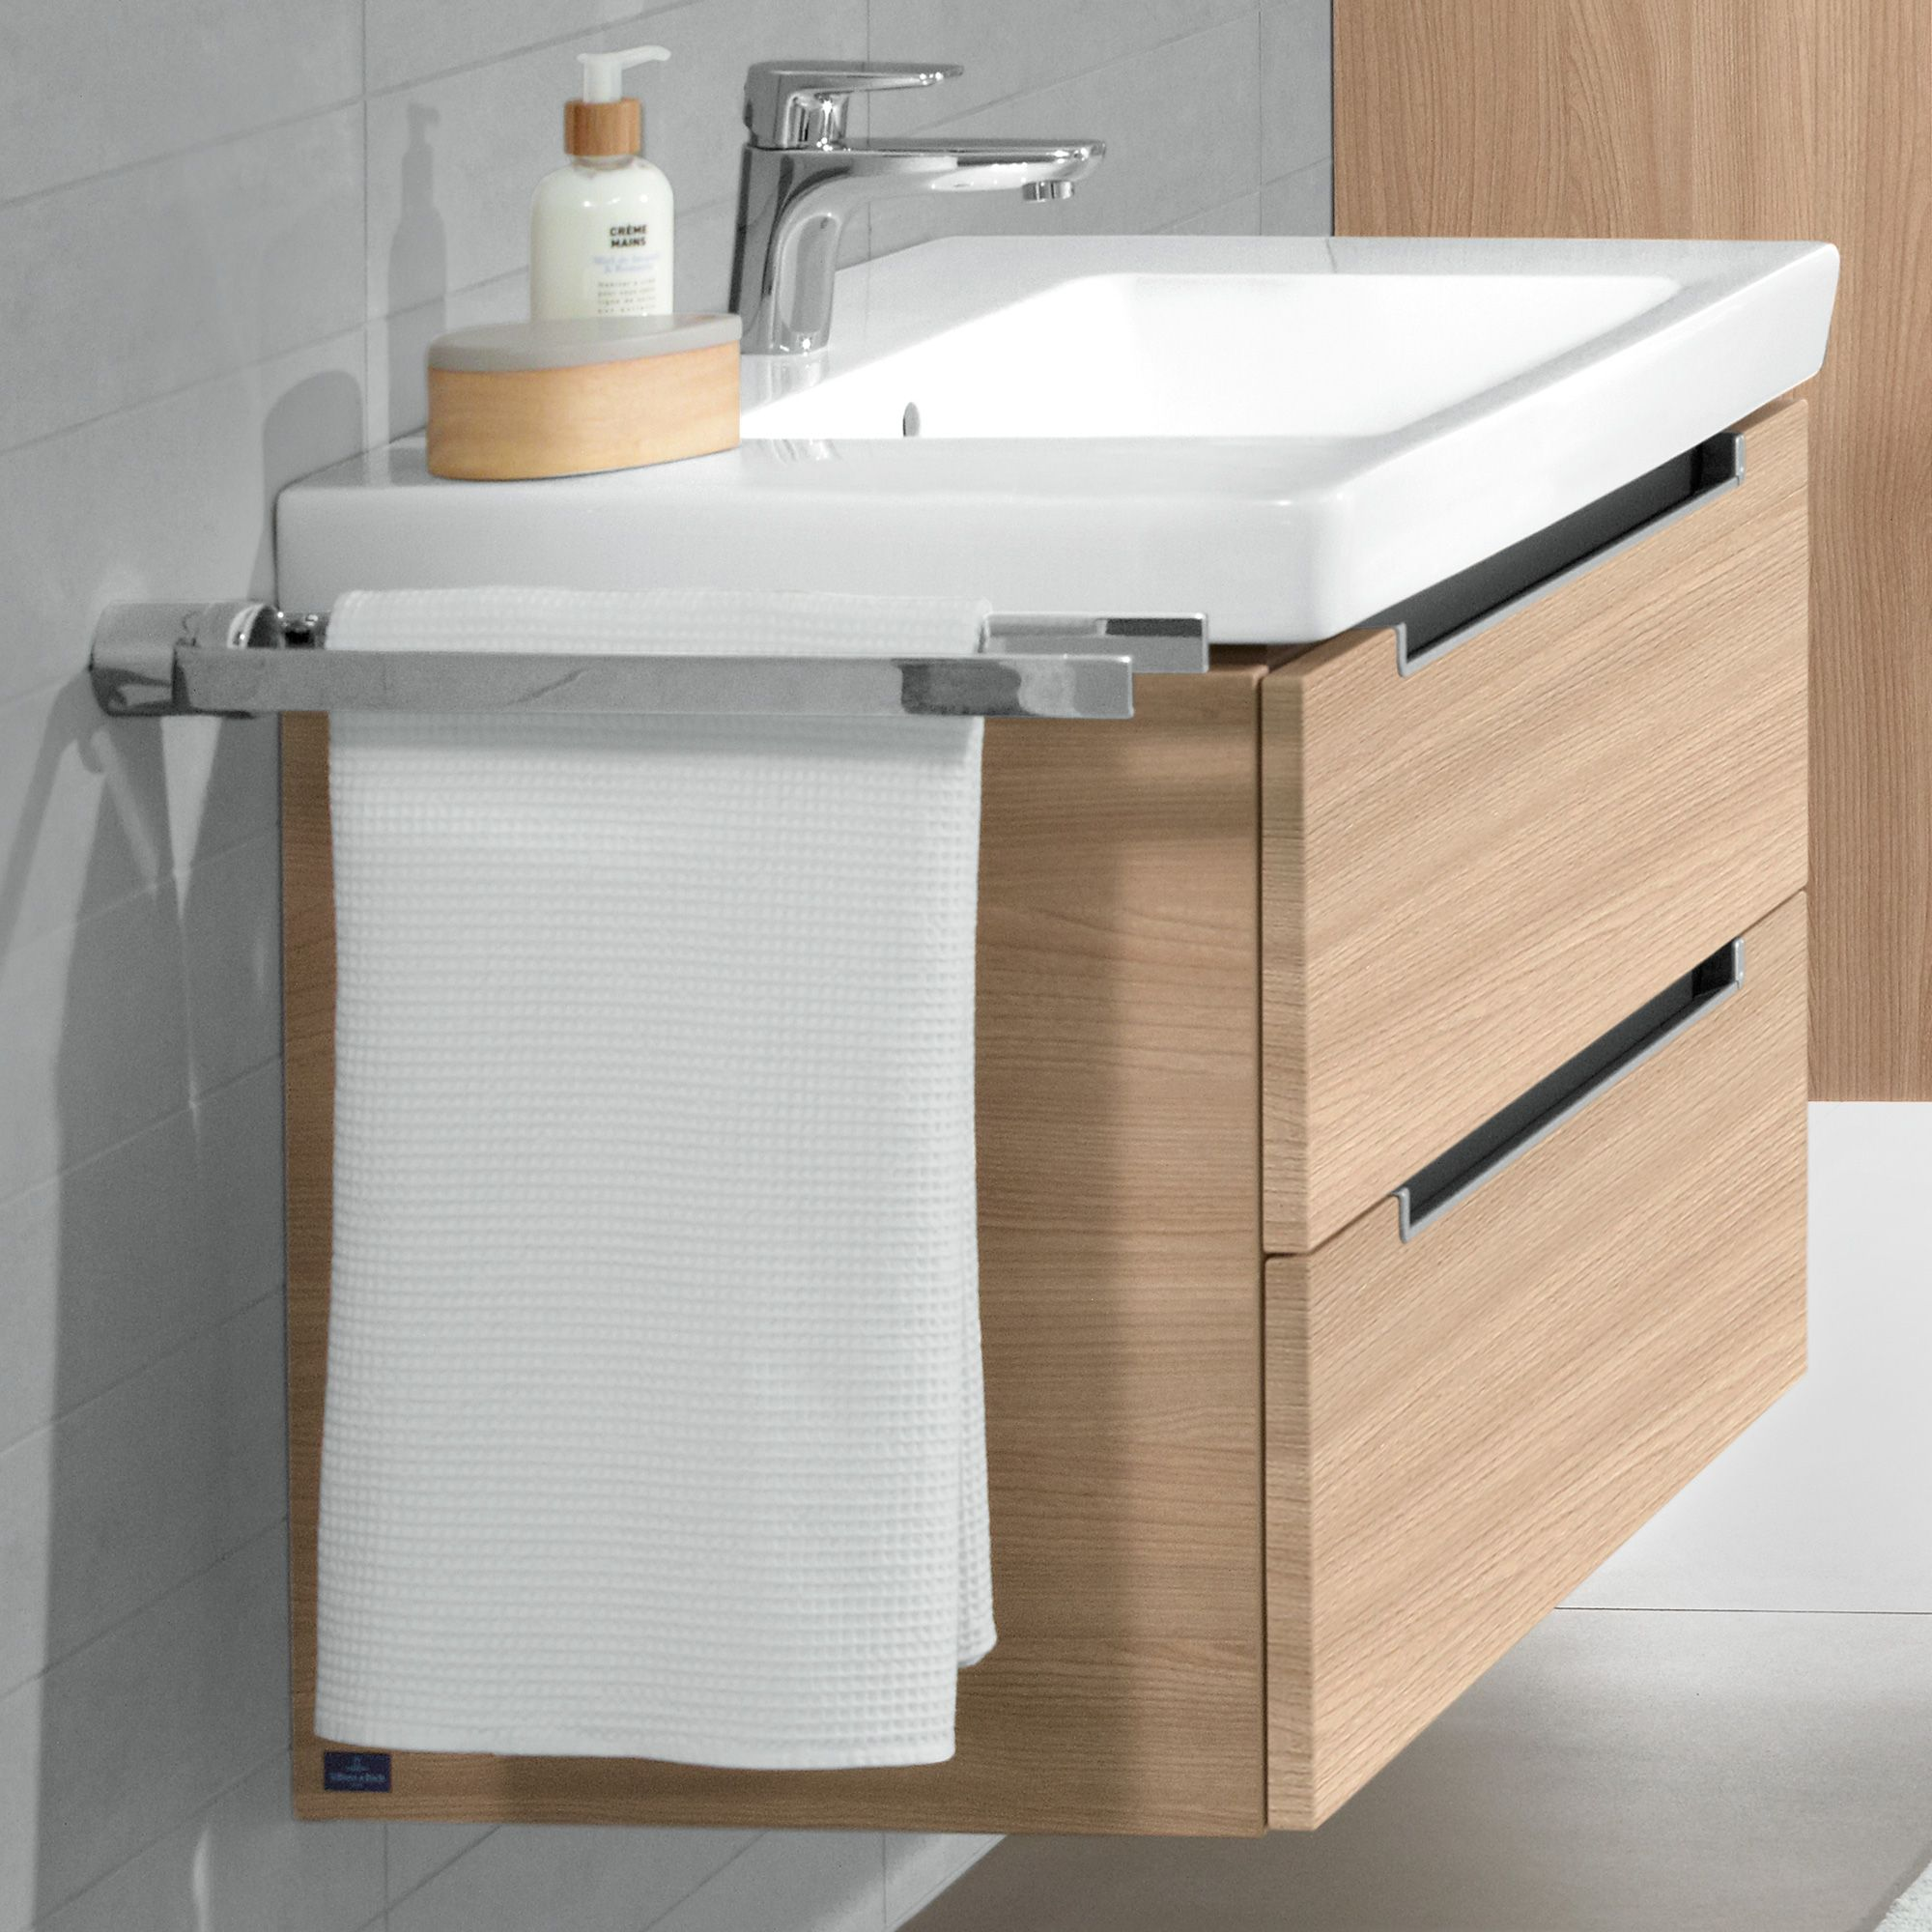 Villeroy And Boch Vanity villeroy & boch elm impresso subway 2.0 a68900 | bathroom